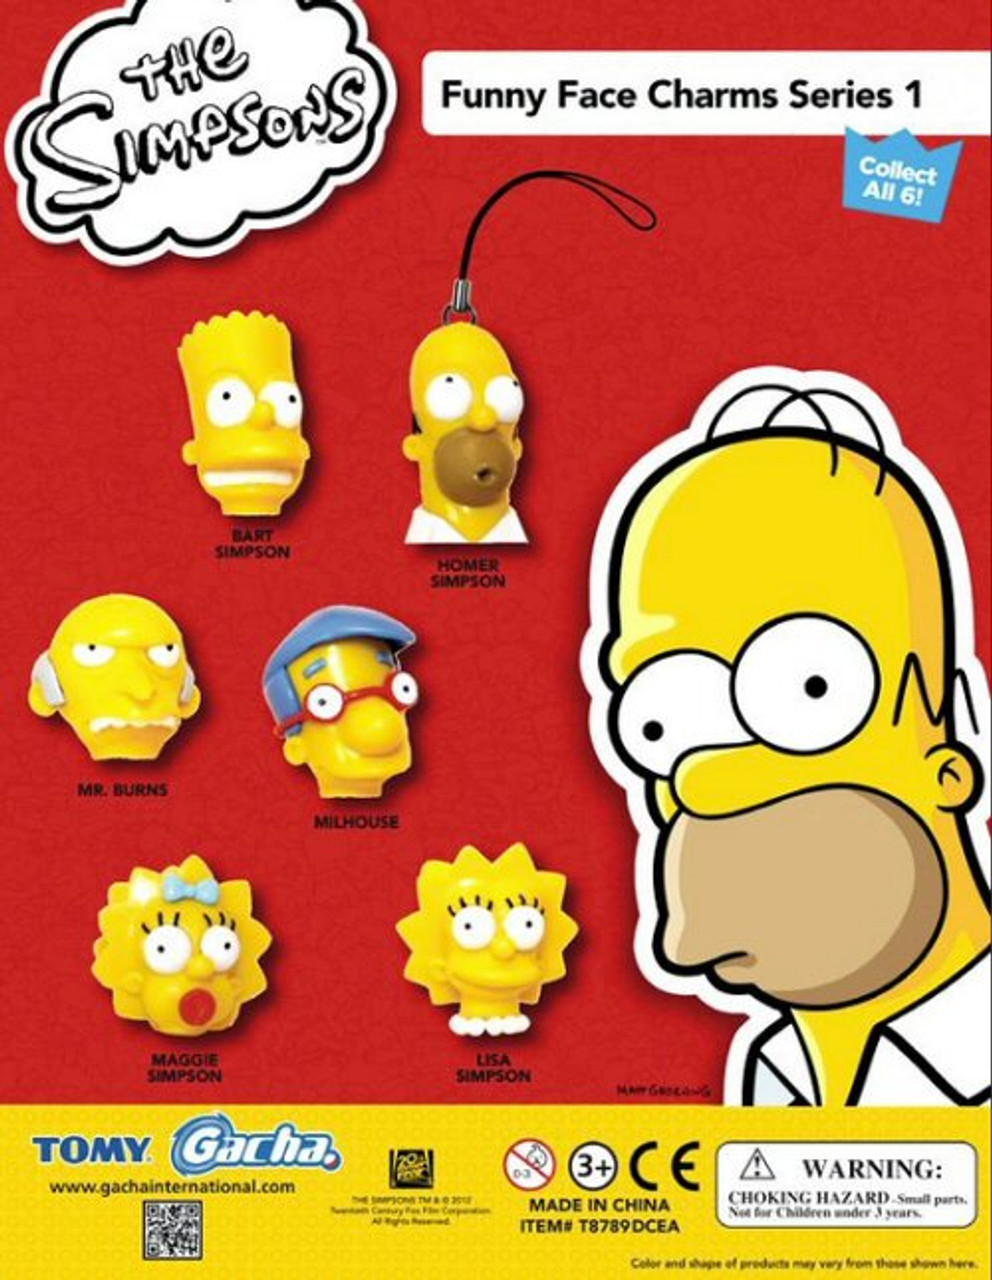 Homer Simpson Funny Face : homer, simpson, funny, Simpsons, Funny, Charms, Vending, Capsules, CandyMachines.com